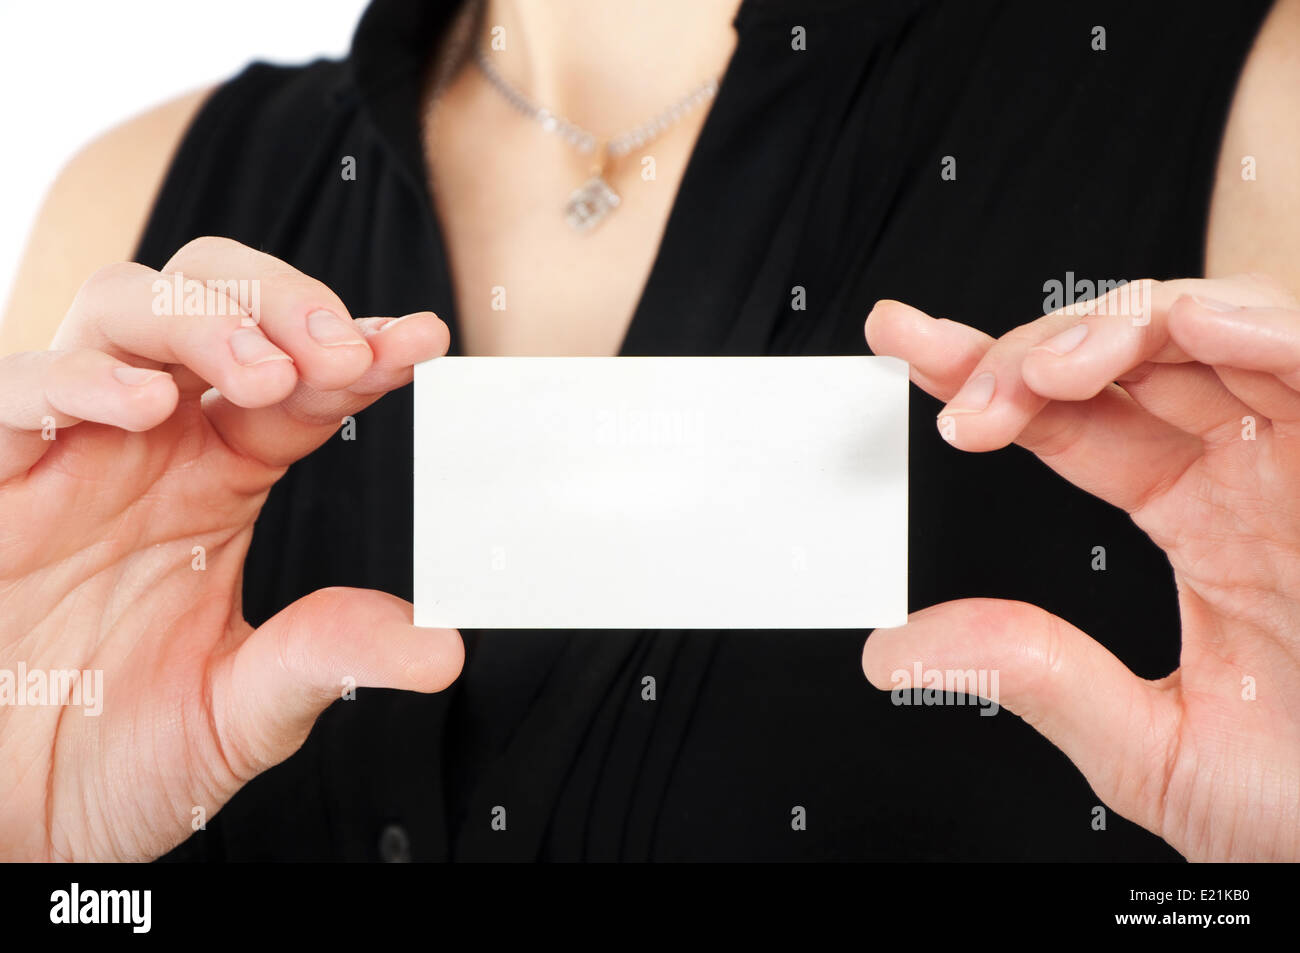 Woman hand holding business card Stock Photo, Royalty Free Image ...